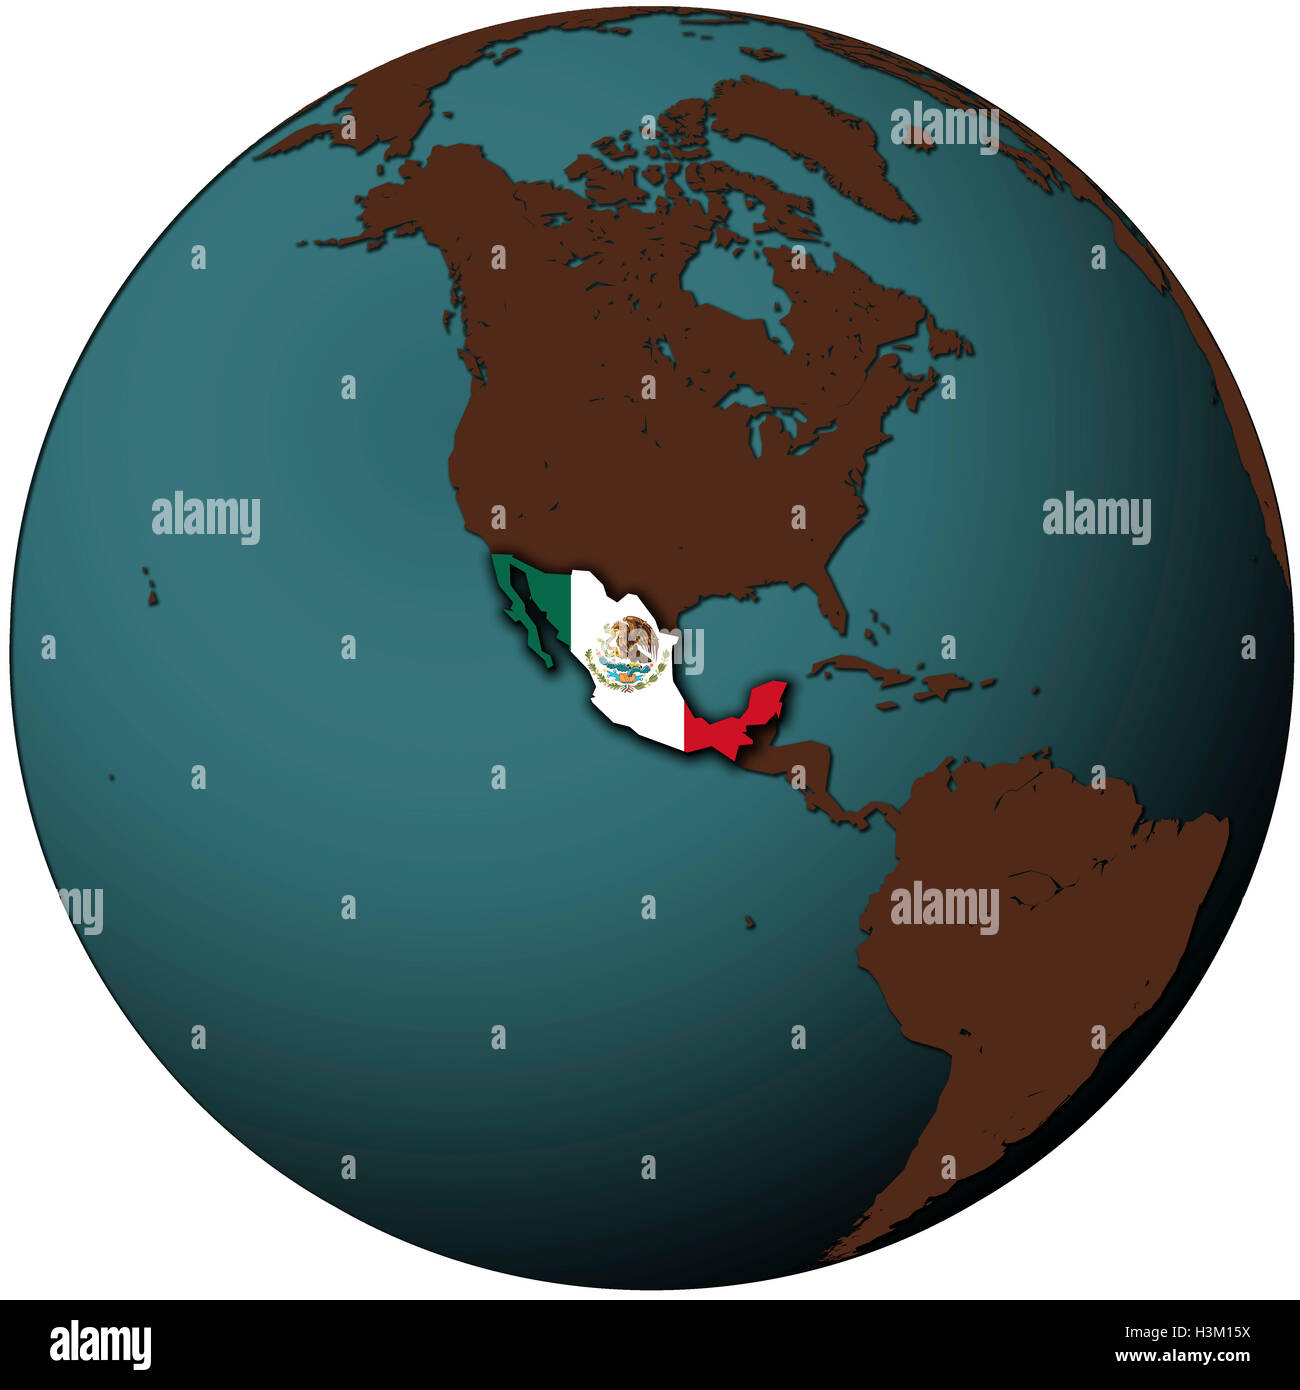 mexico flag on map of earth globe Stock Photo: 122756534 - Alamy